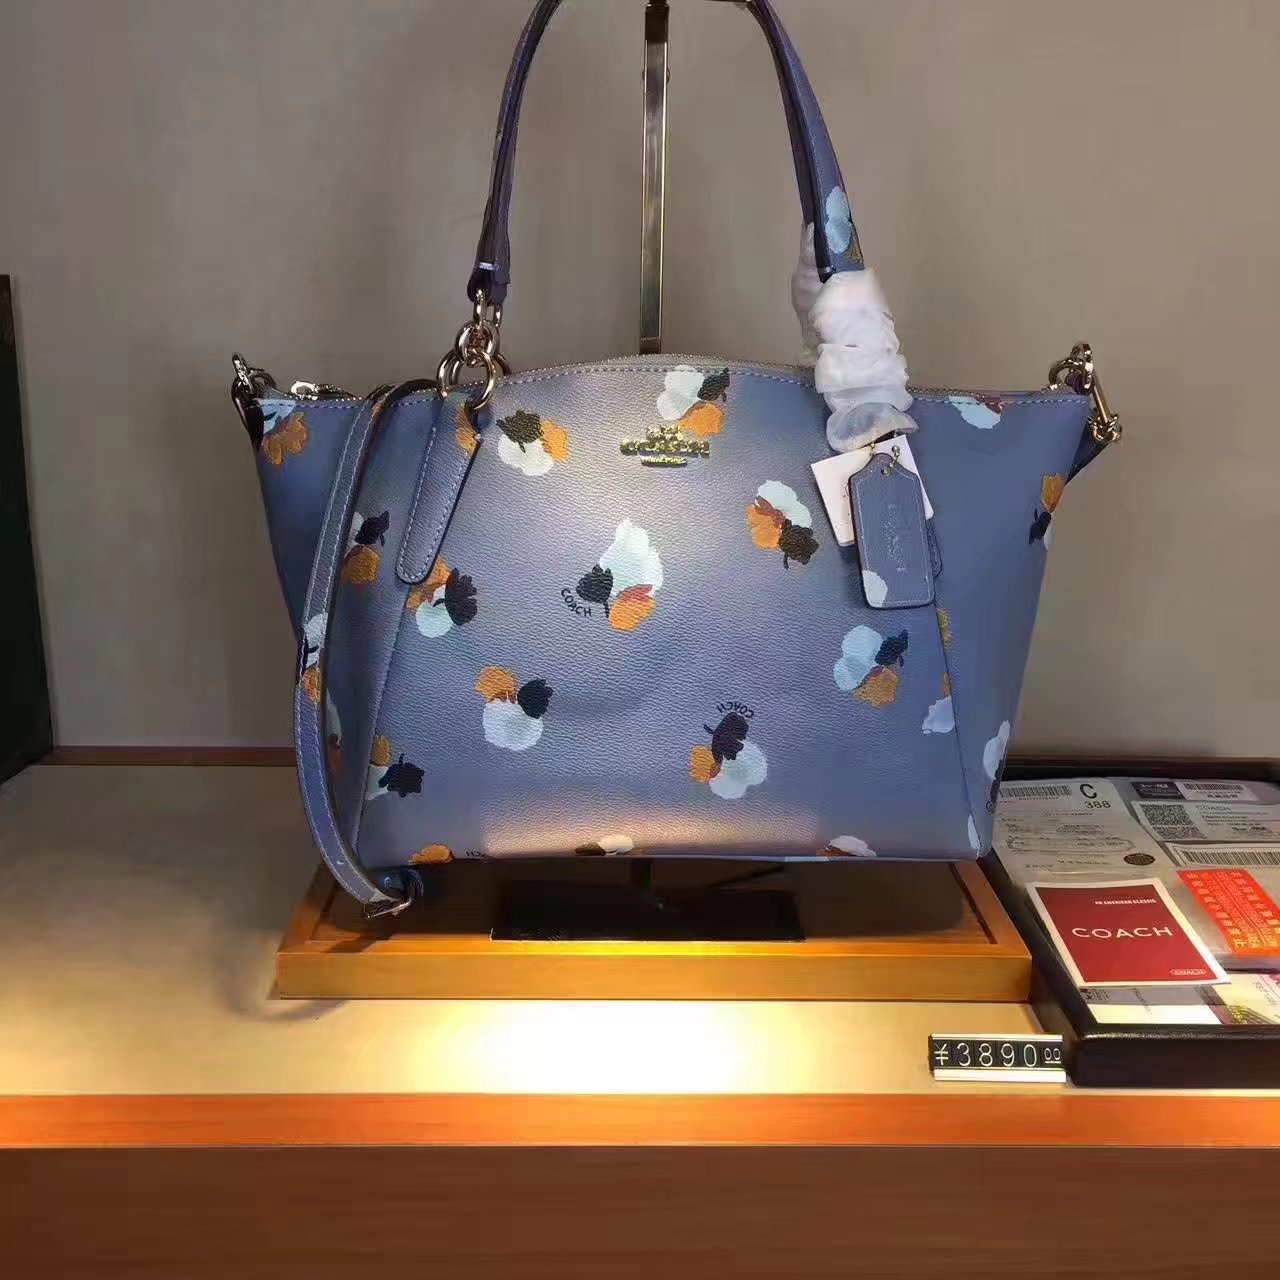 Coach 36625 Leather Print Shoulder Bag Blue